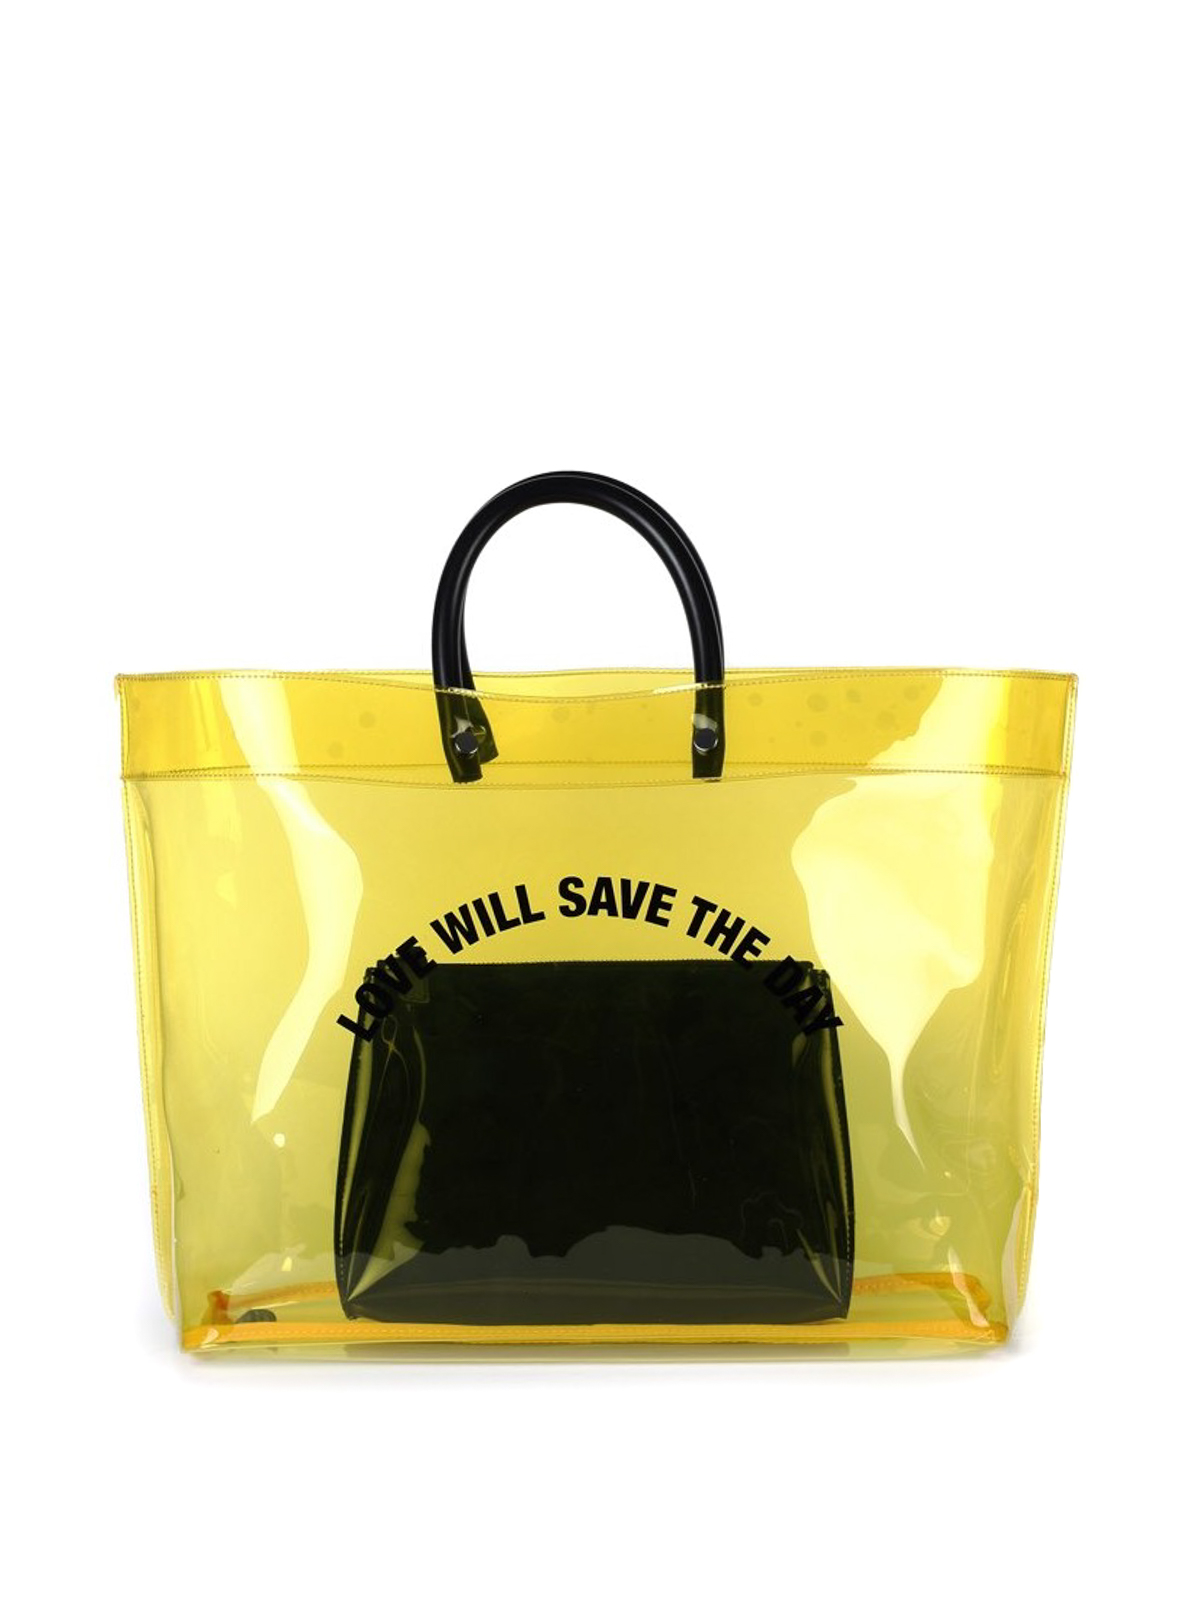 Dsquared2 Yellow PVC tote